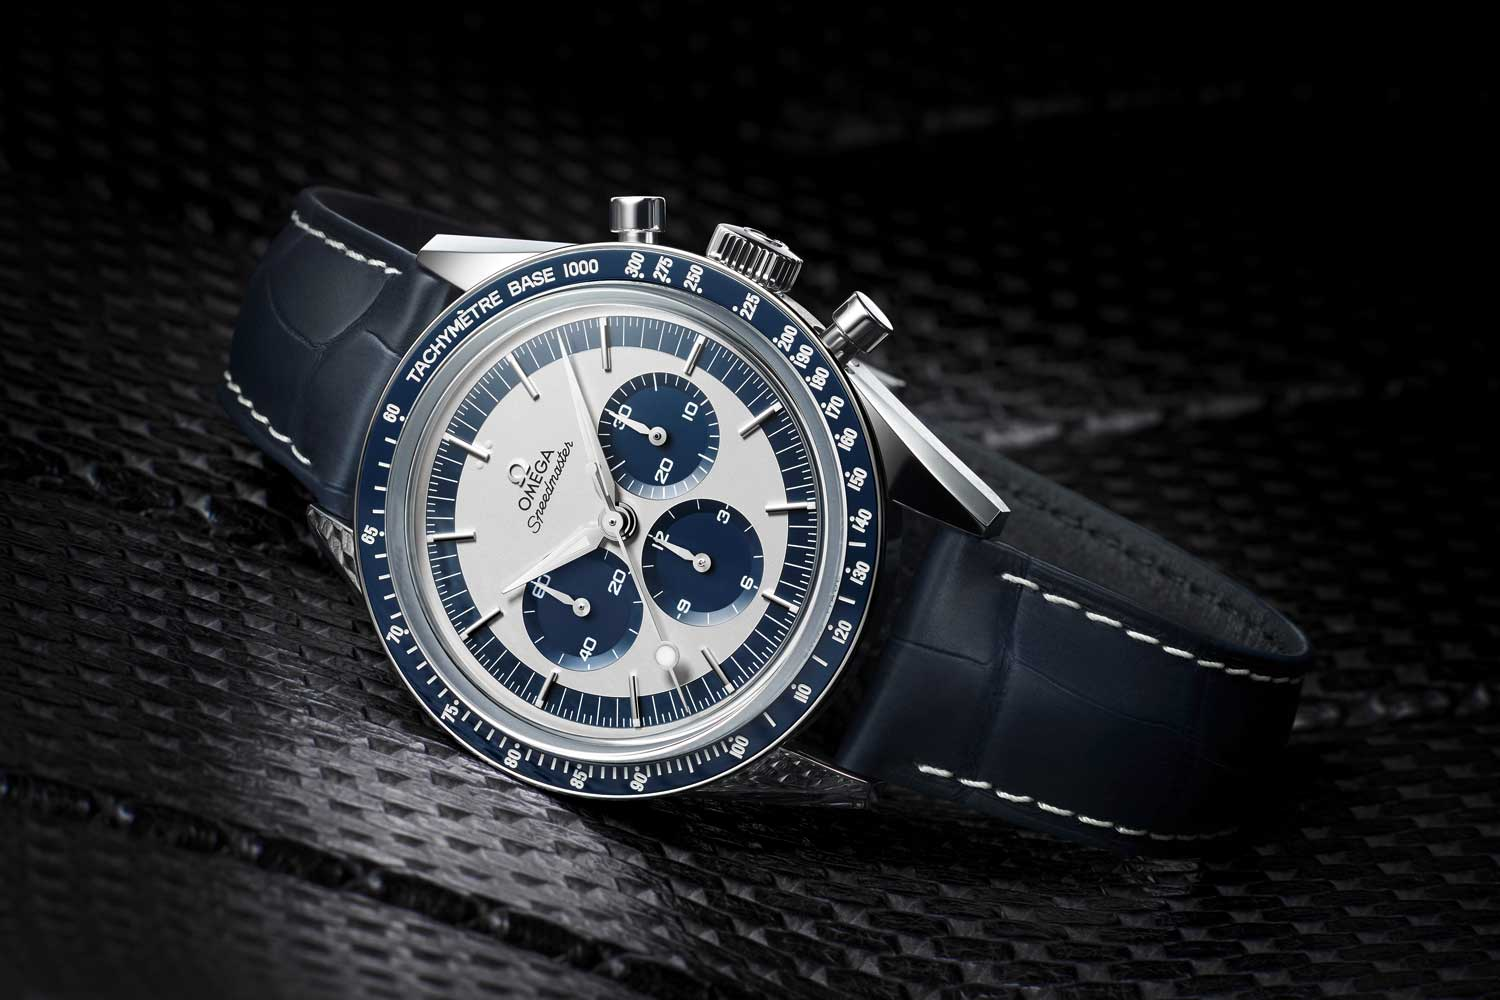 The 2016 Speedmaster Moonwatch Chronograph ref. 311.33.40.30.02.001measuring in at 39.7mm